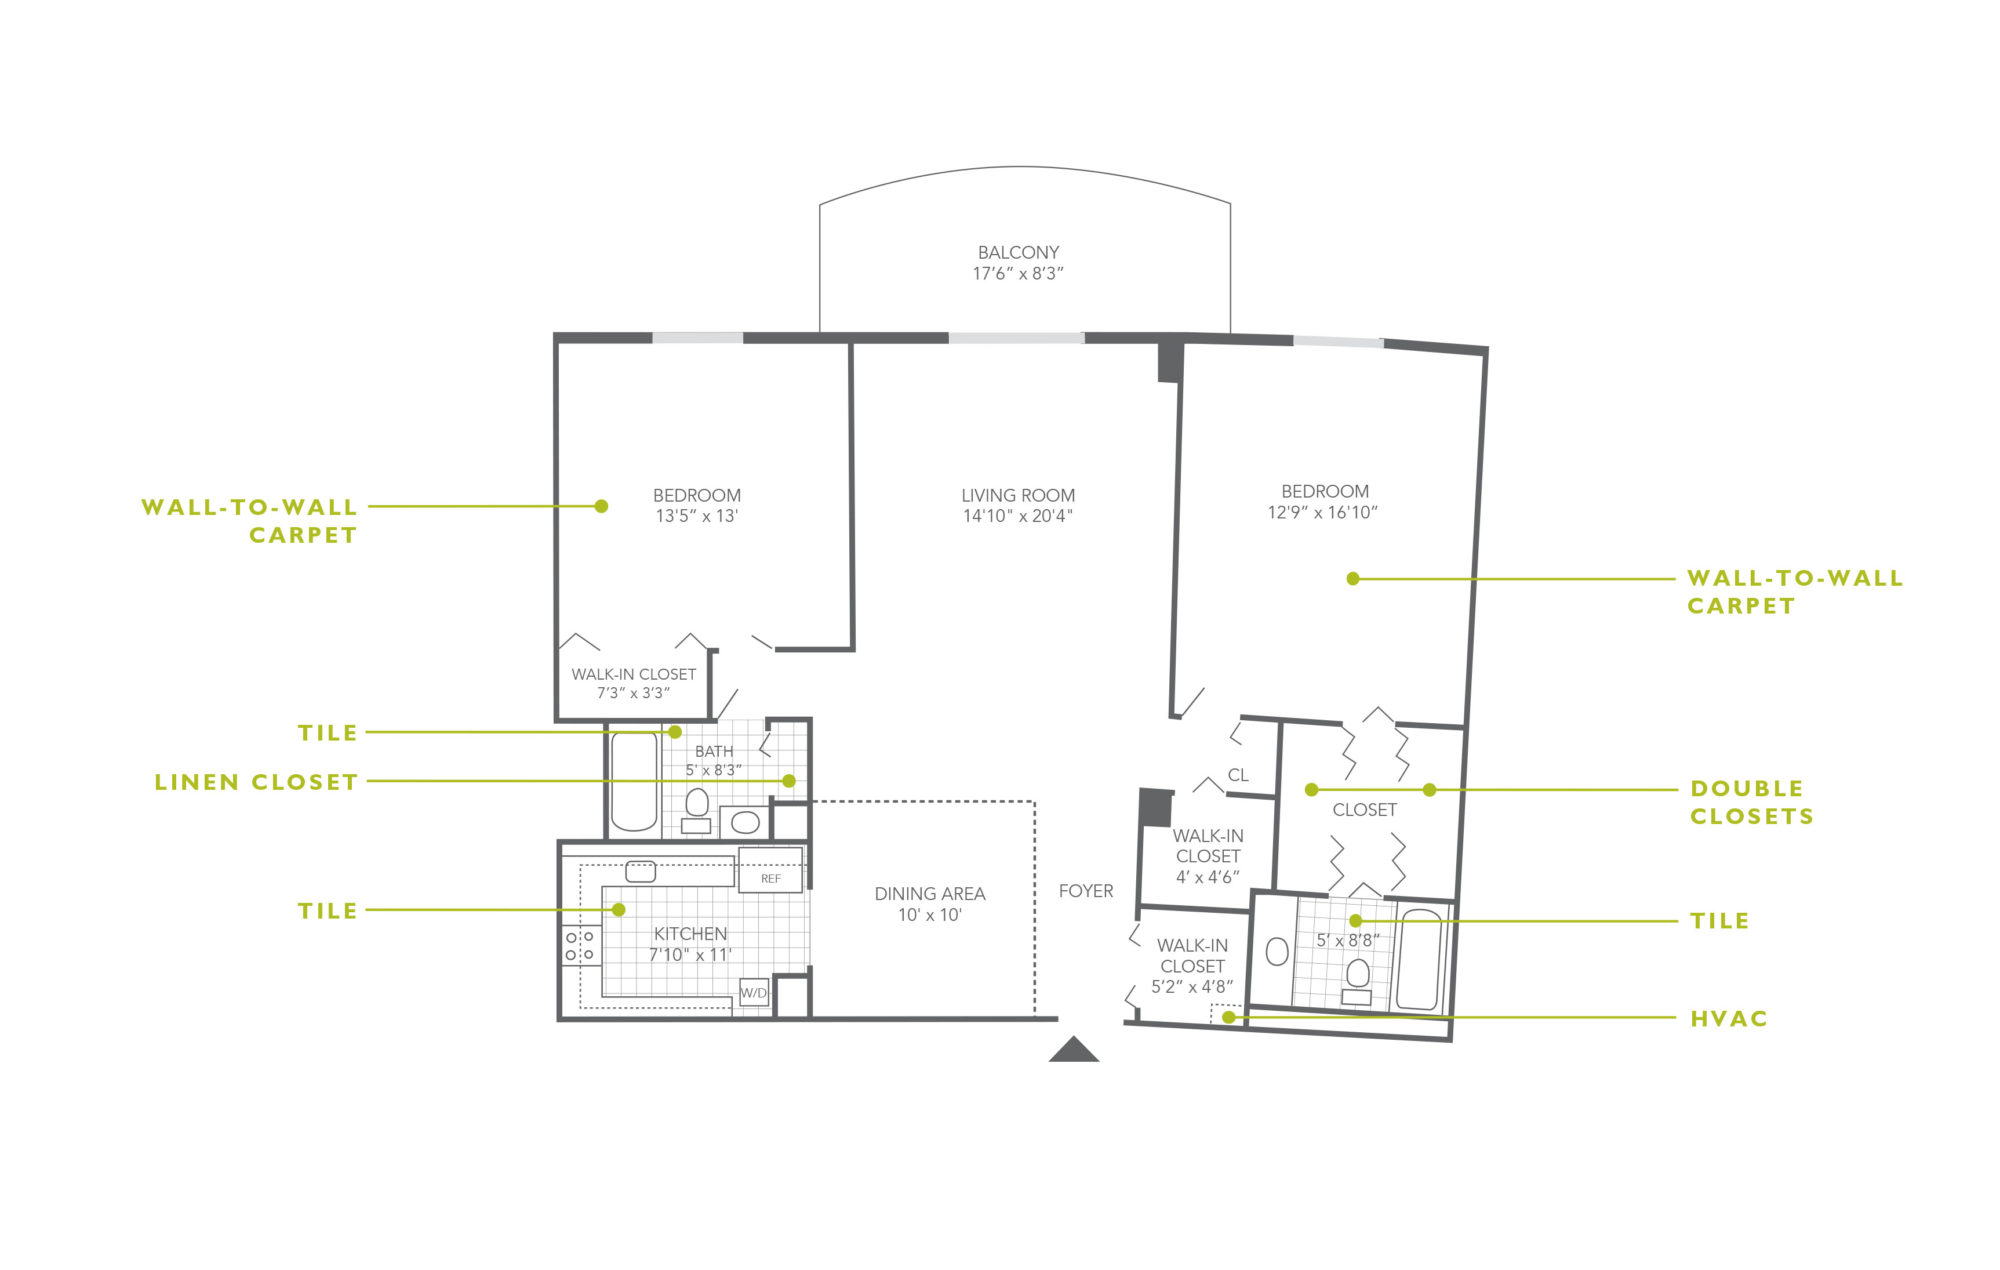 Floor plan of a 1,249 sq. ft. 2-bedroom apartment for rent in Jenkintown, PA